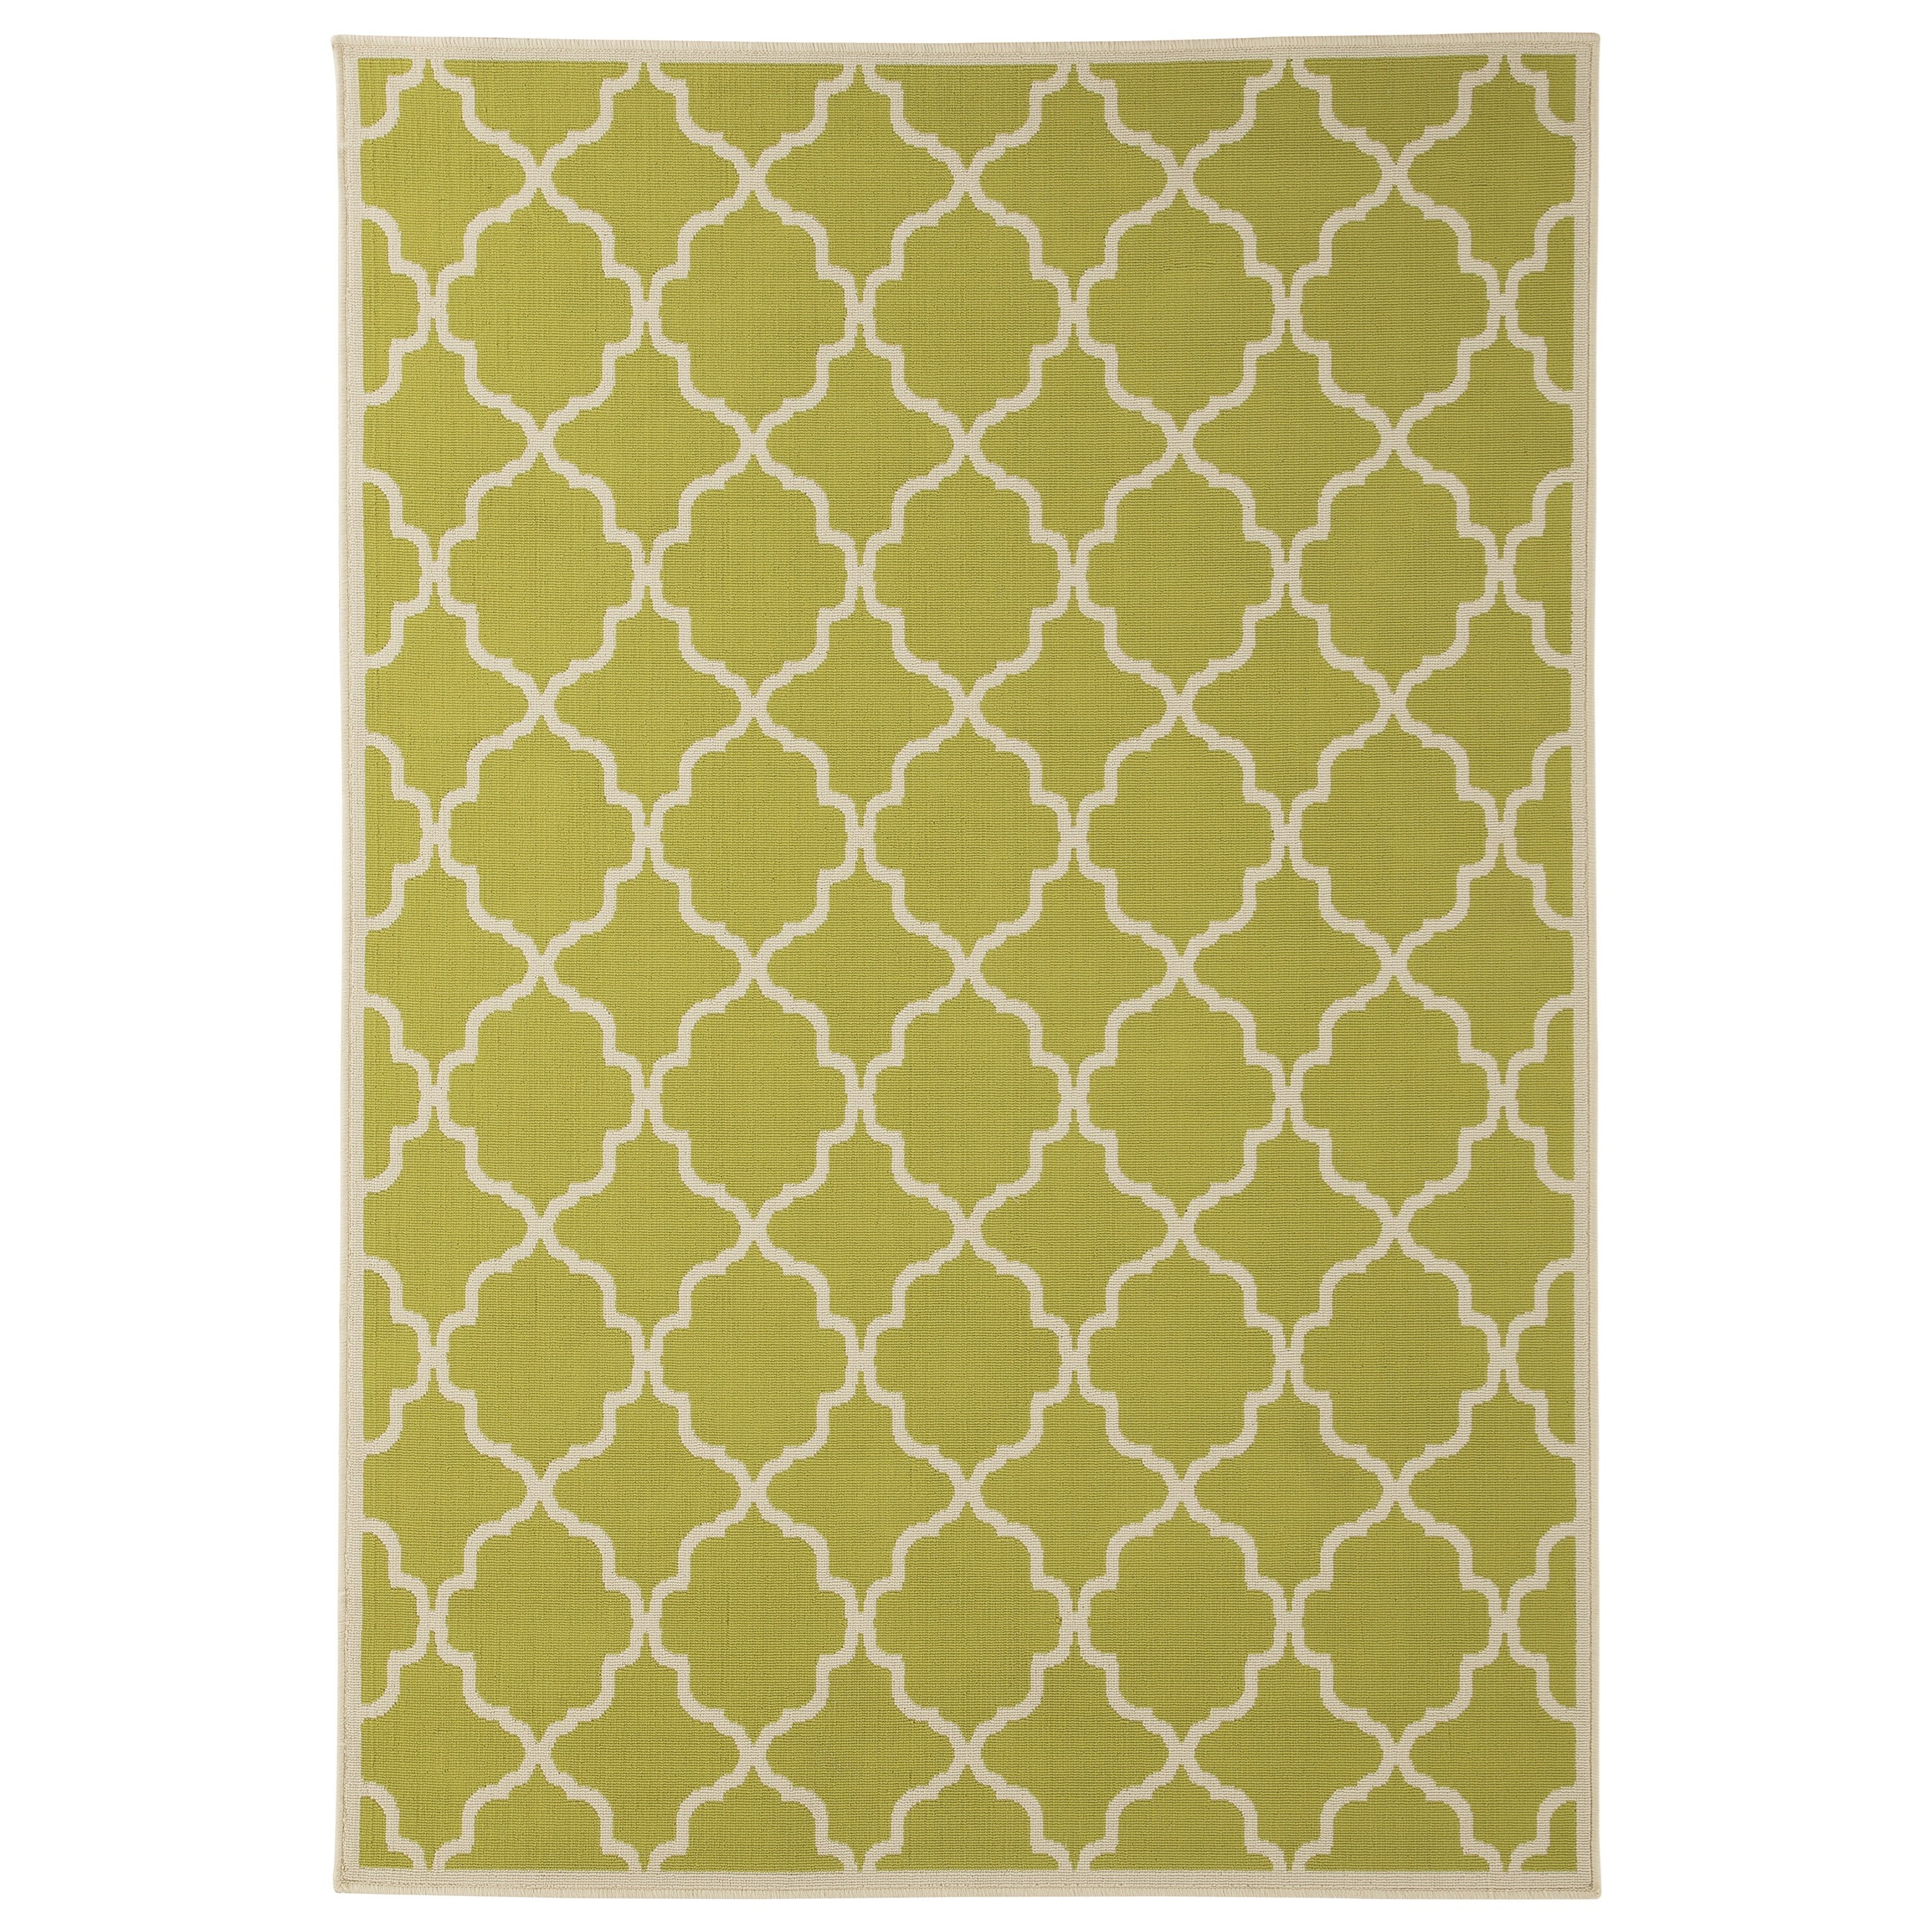 Signature Design by Ashley Contemporary Area Rugs Kerry Green/Cream Large Rug - Item Number: R402321